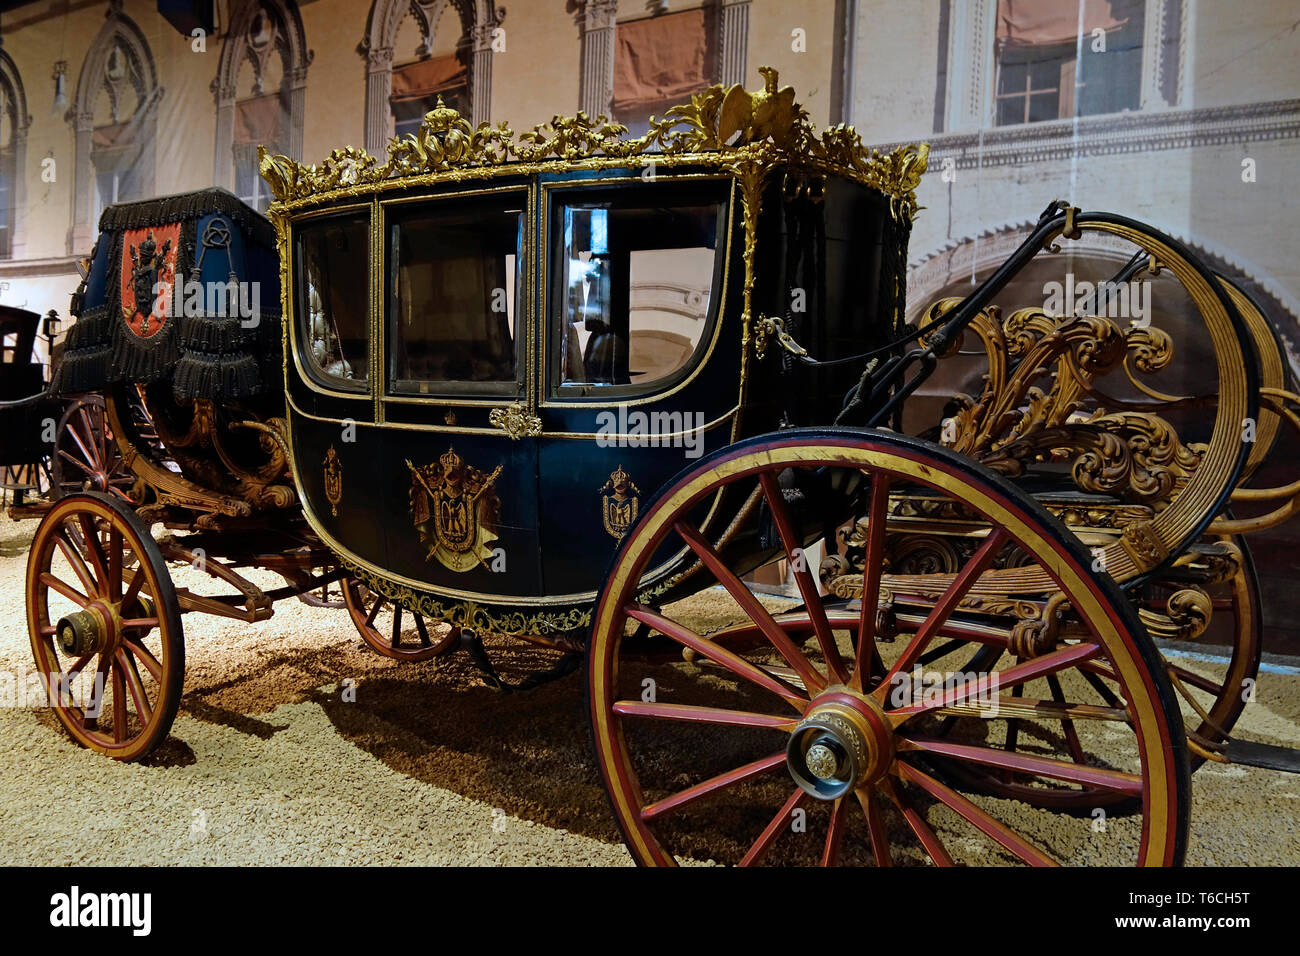 1852 seven-window dress coach / royal carriage / six horse drawn gala berlin coach at Autoworld, vintage vehicle museum in Brussels, Belgium - Stock Image